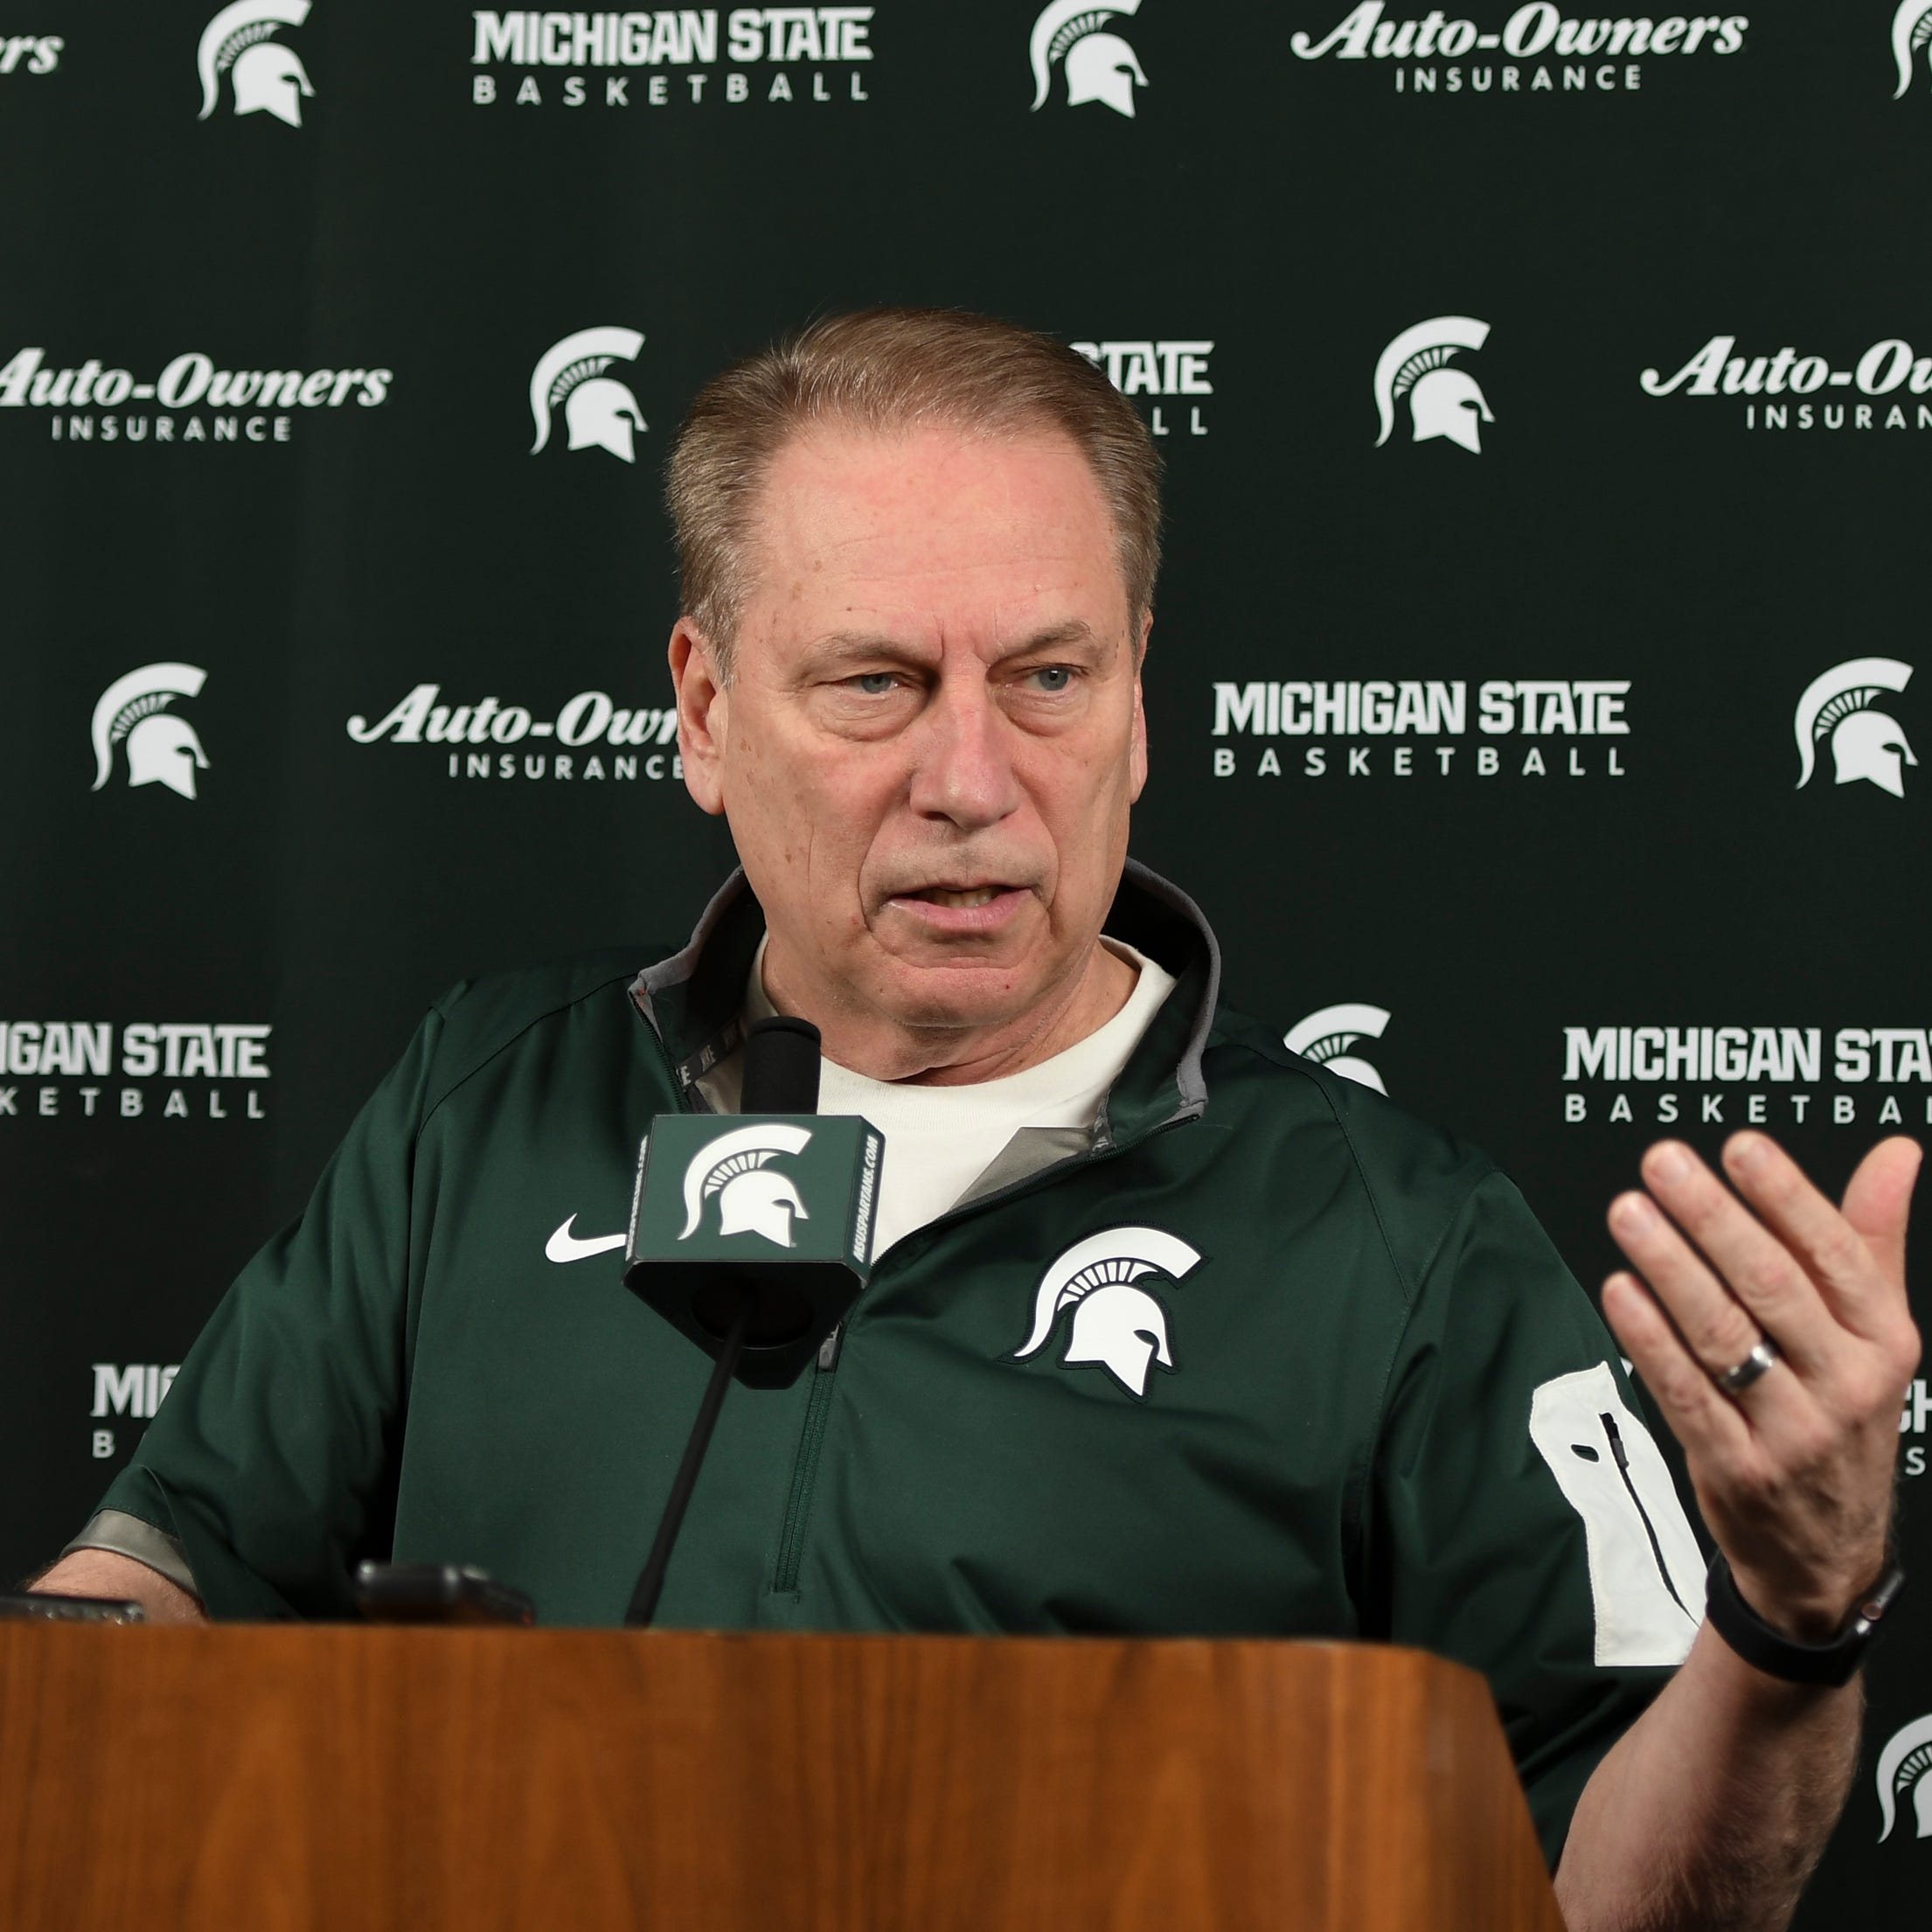 What Michigan State's Tom Izzo said about Final Four preparations